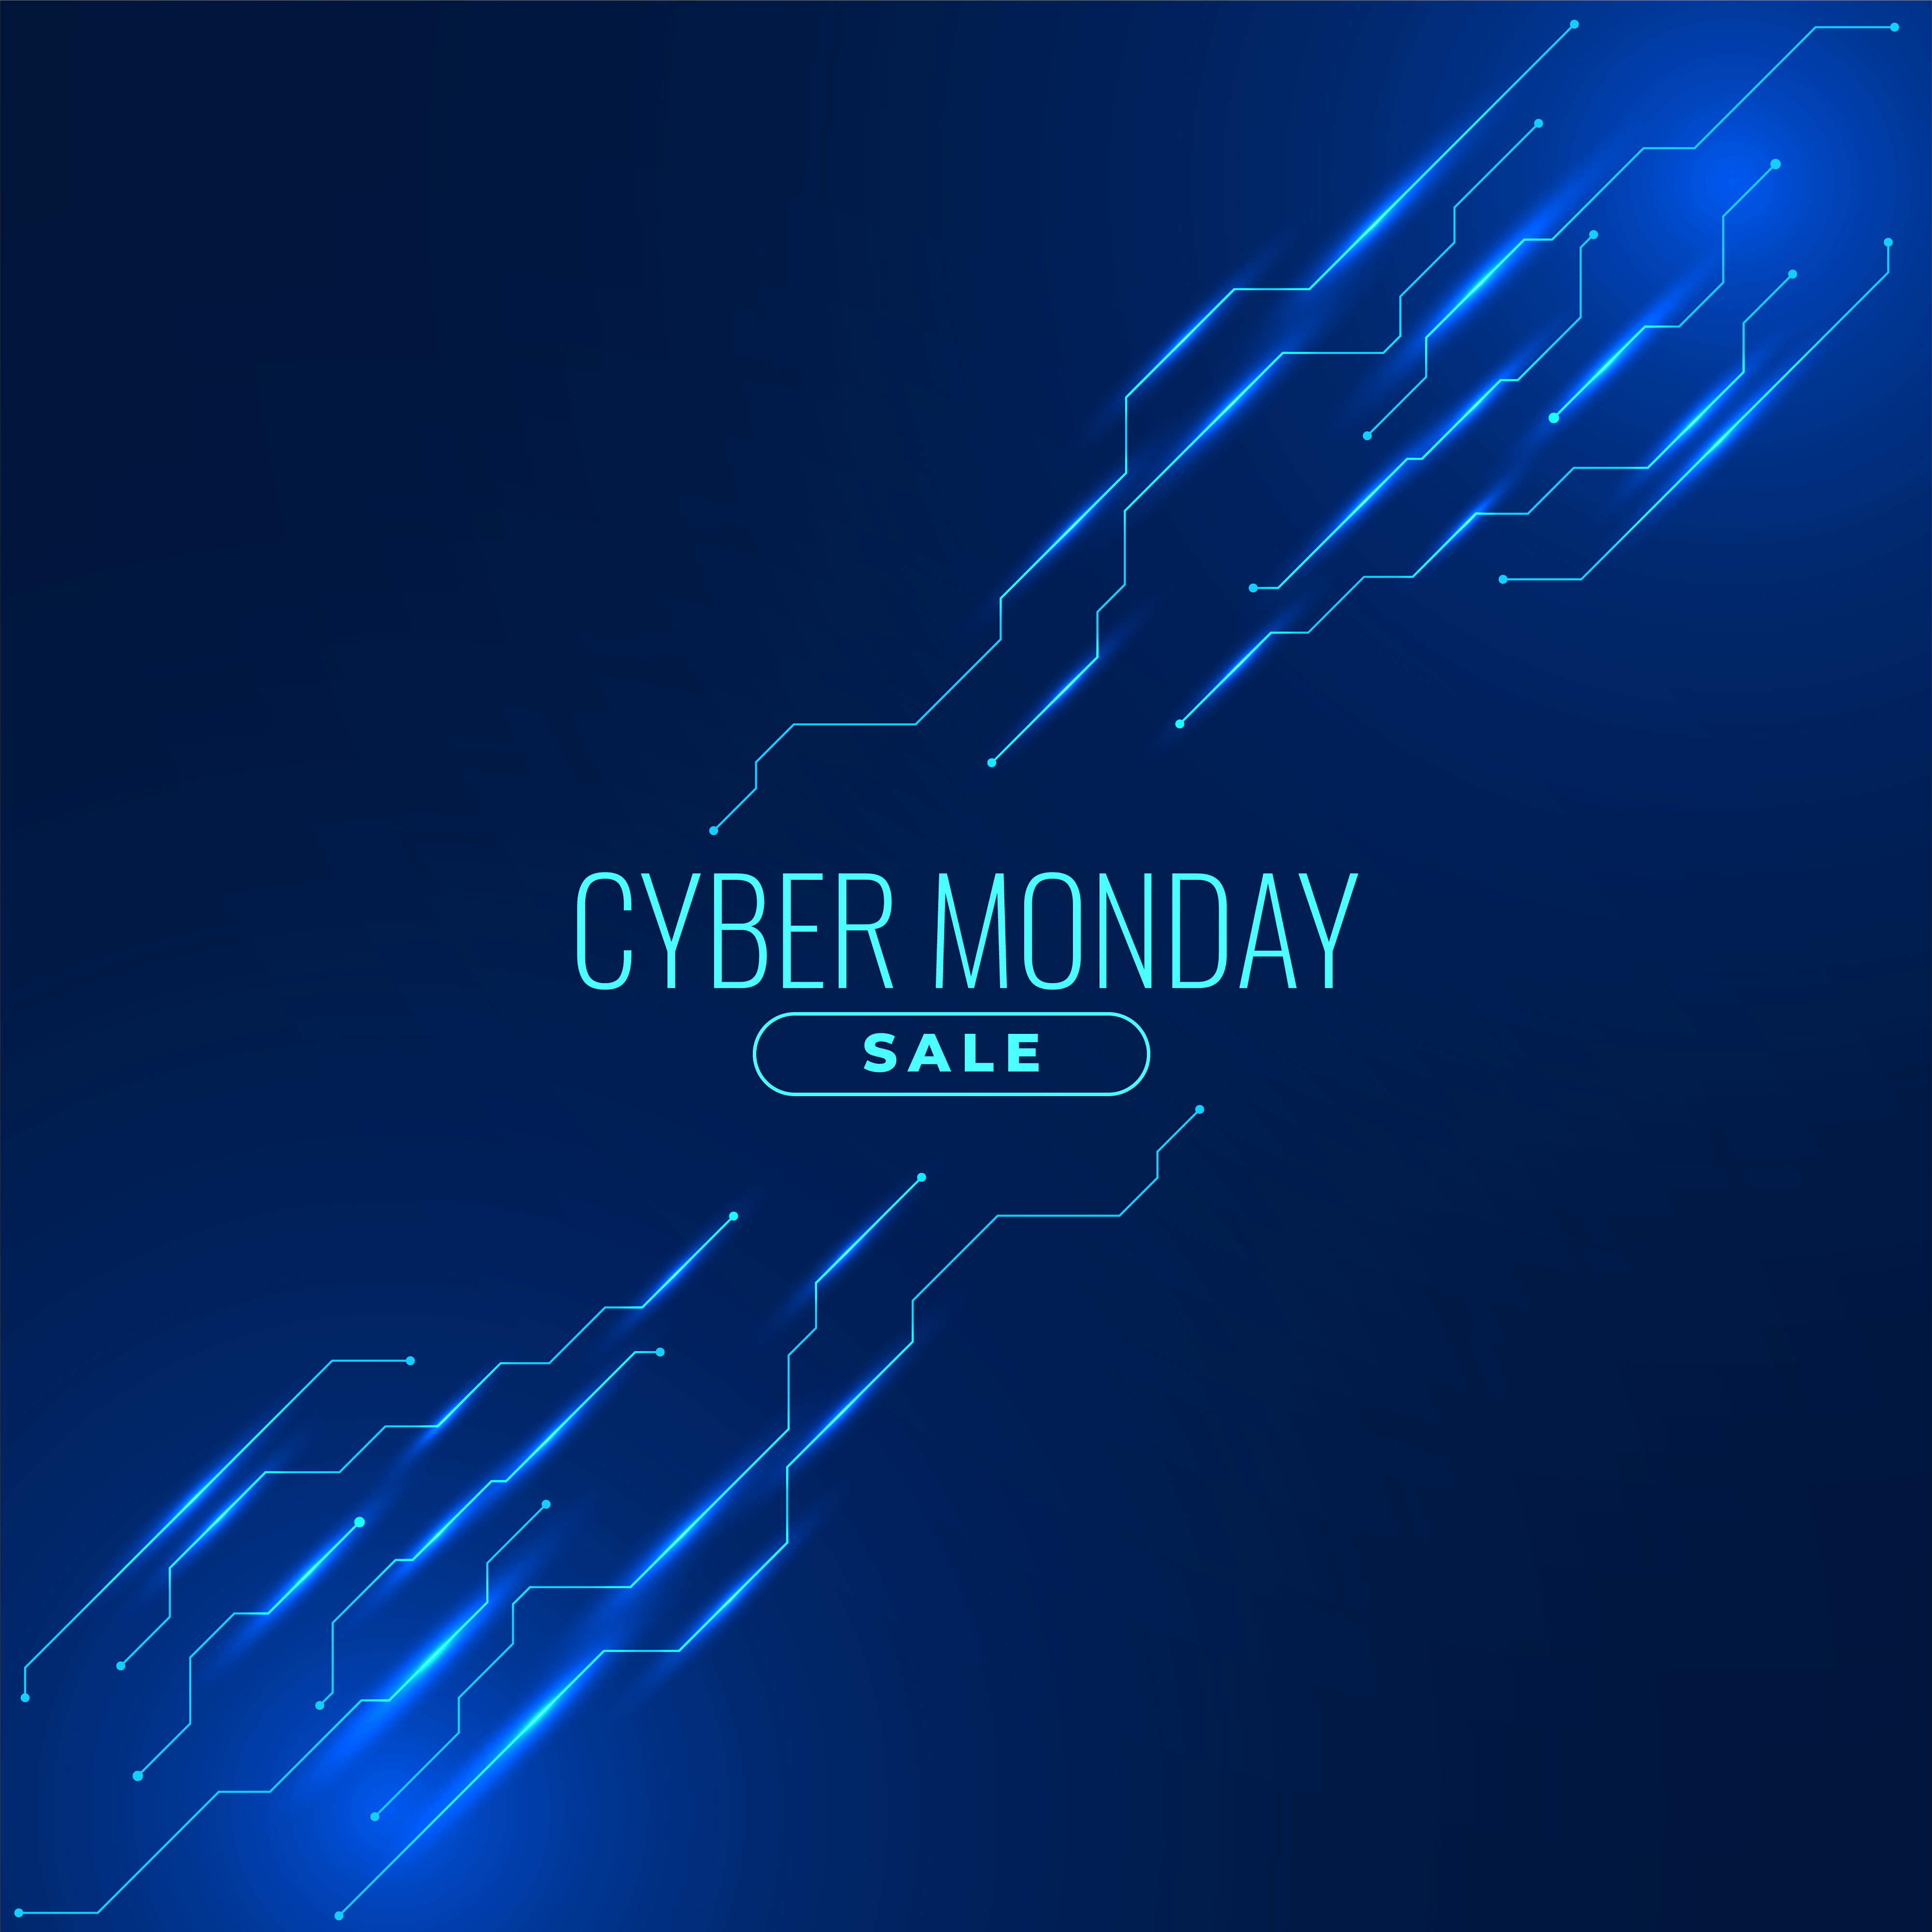 Cyber monday sale background for online shopping